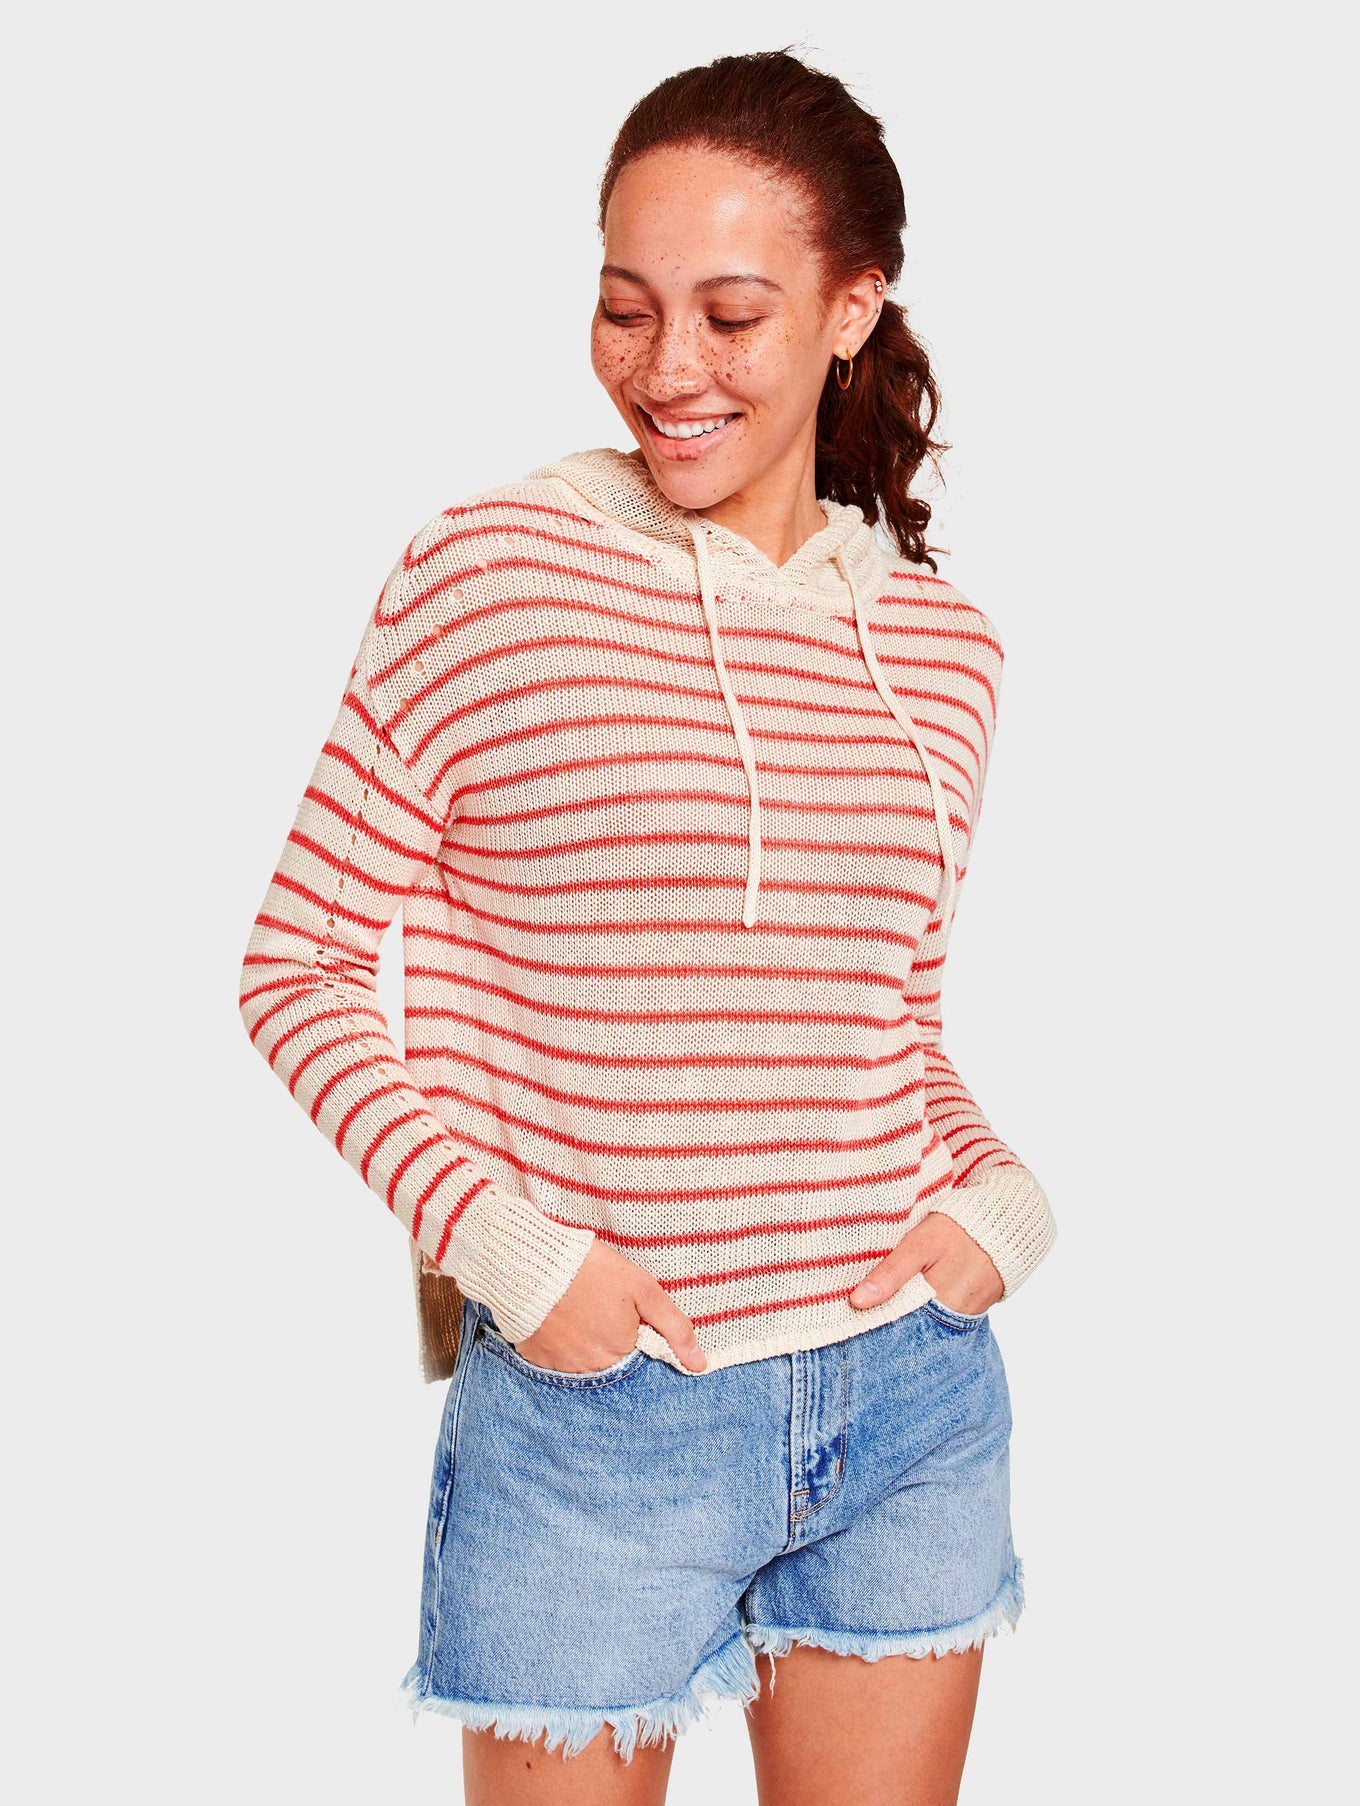 Corded Linen Striped Hoodie - Ivory/Red Stripe - Image 2